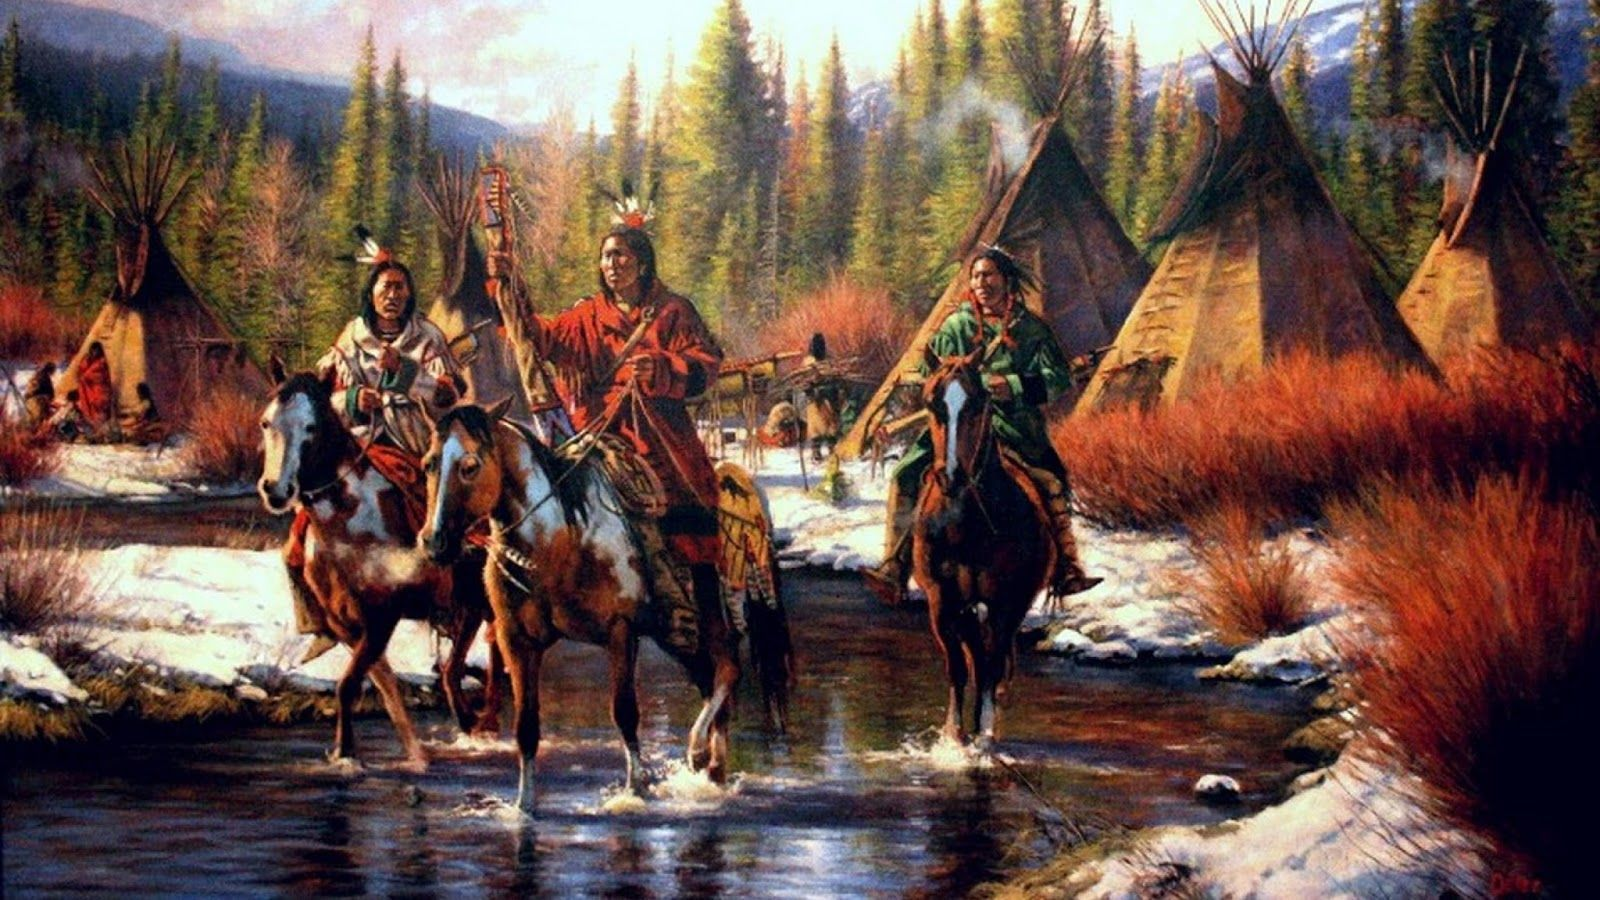 1600x900 American Indian Teachings: Teepee in the Water | Humans Are Free ...